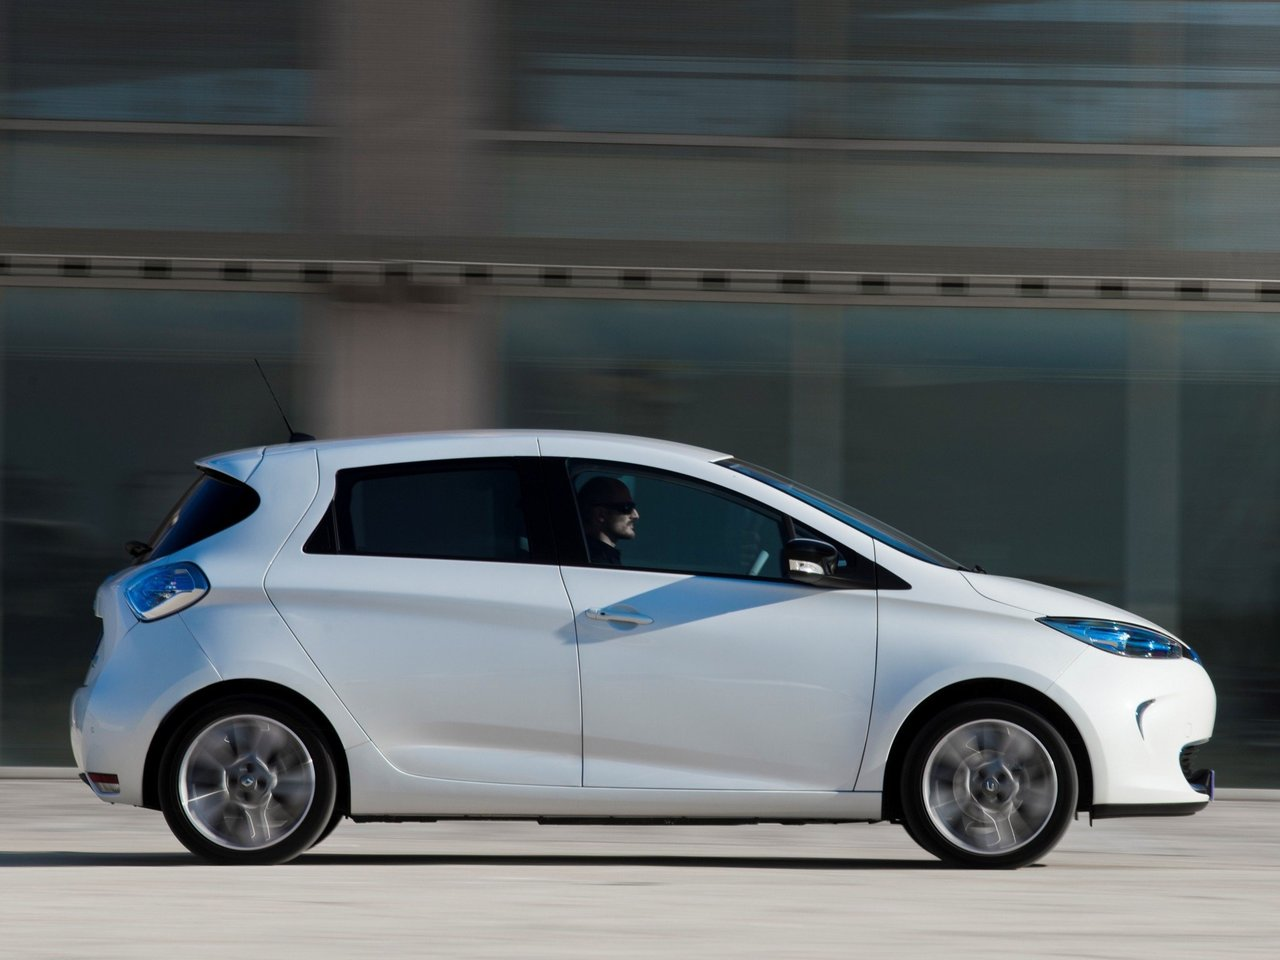 renault zoe technical specifications and fuel economy. Black Bedroom Furniture Sets. Home Design Ideas